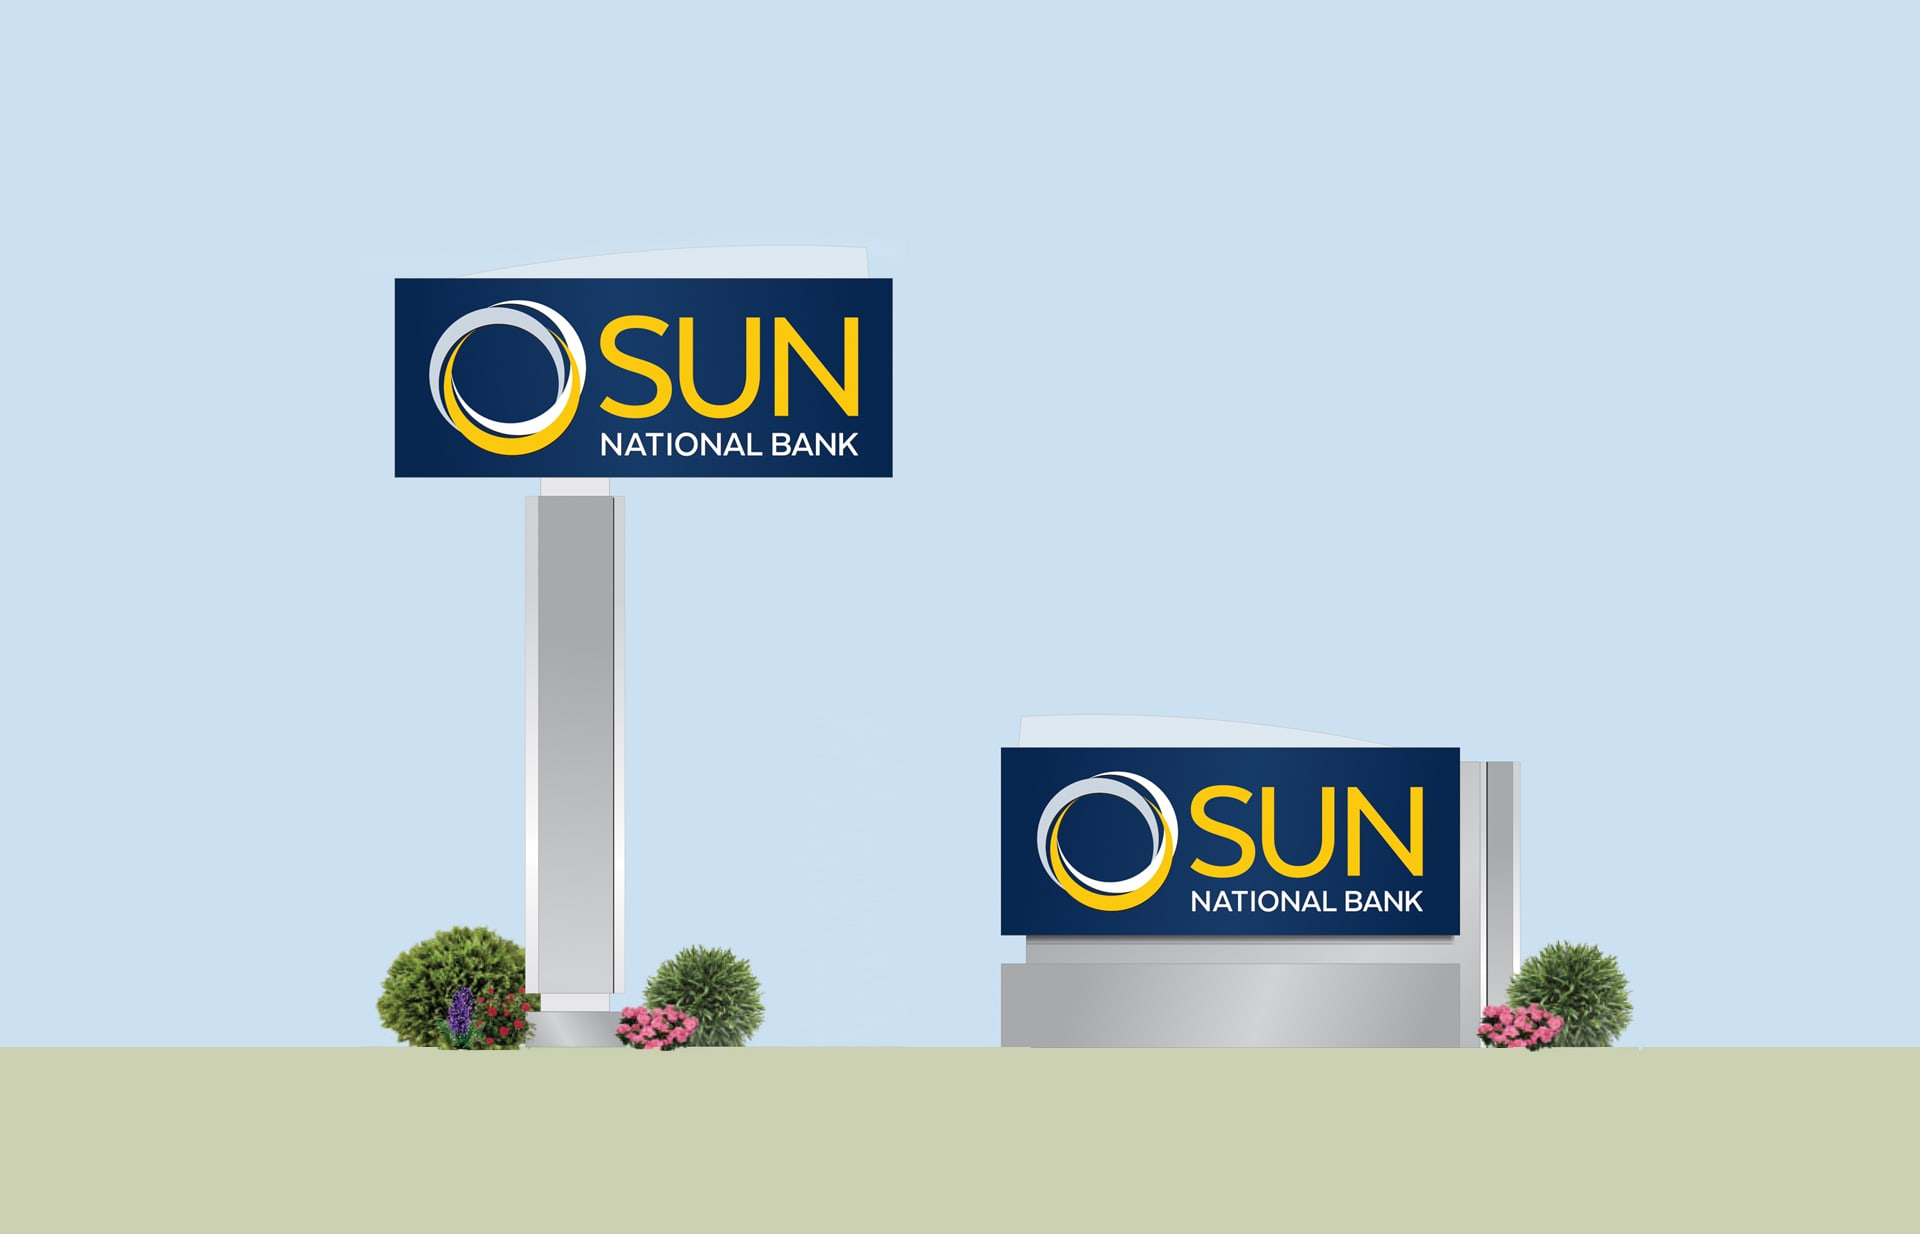 Sun National Bank signage system